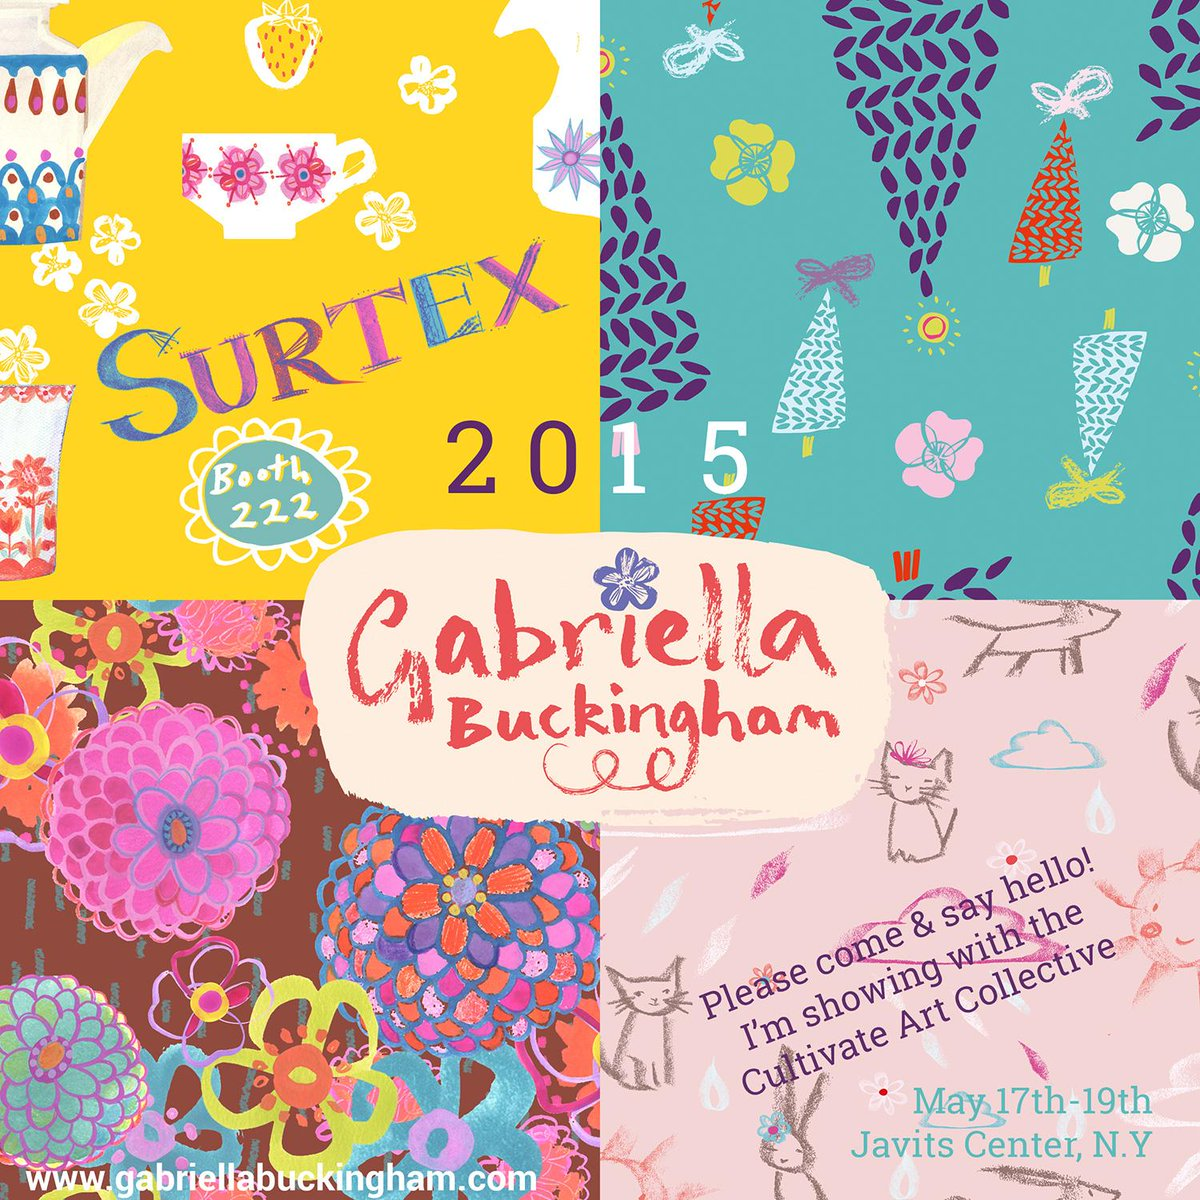 #NSS2015 #surtex #uppercasereader that will be me on booth 222 with the @ArtCultivate collective :) @uppercasemag http://t.co/dqFppZBzdK